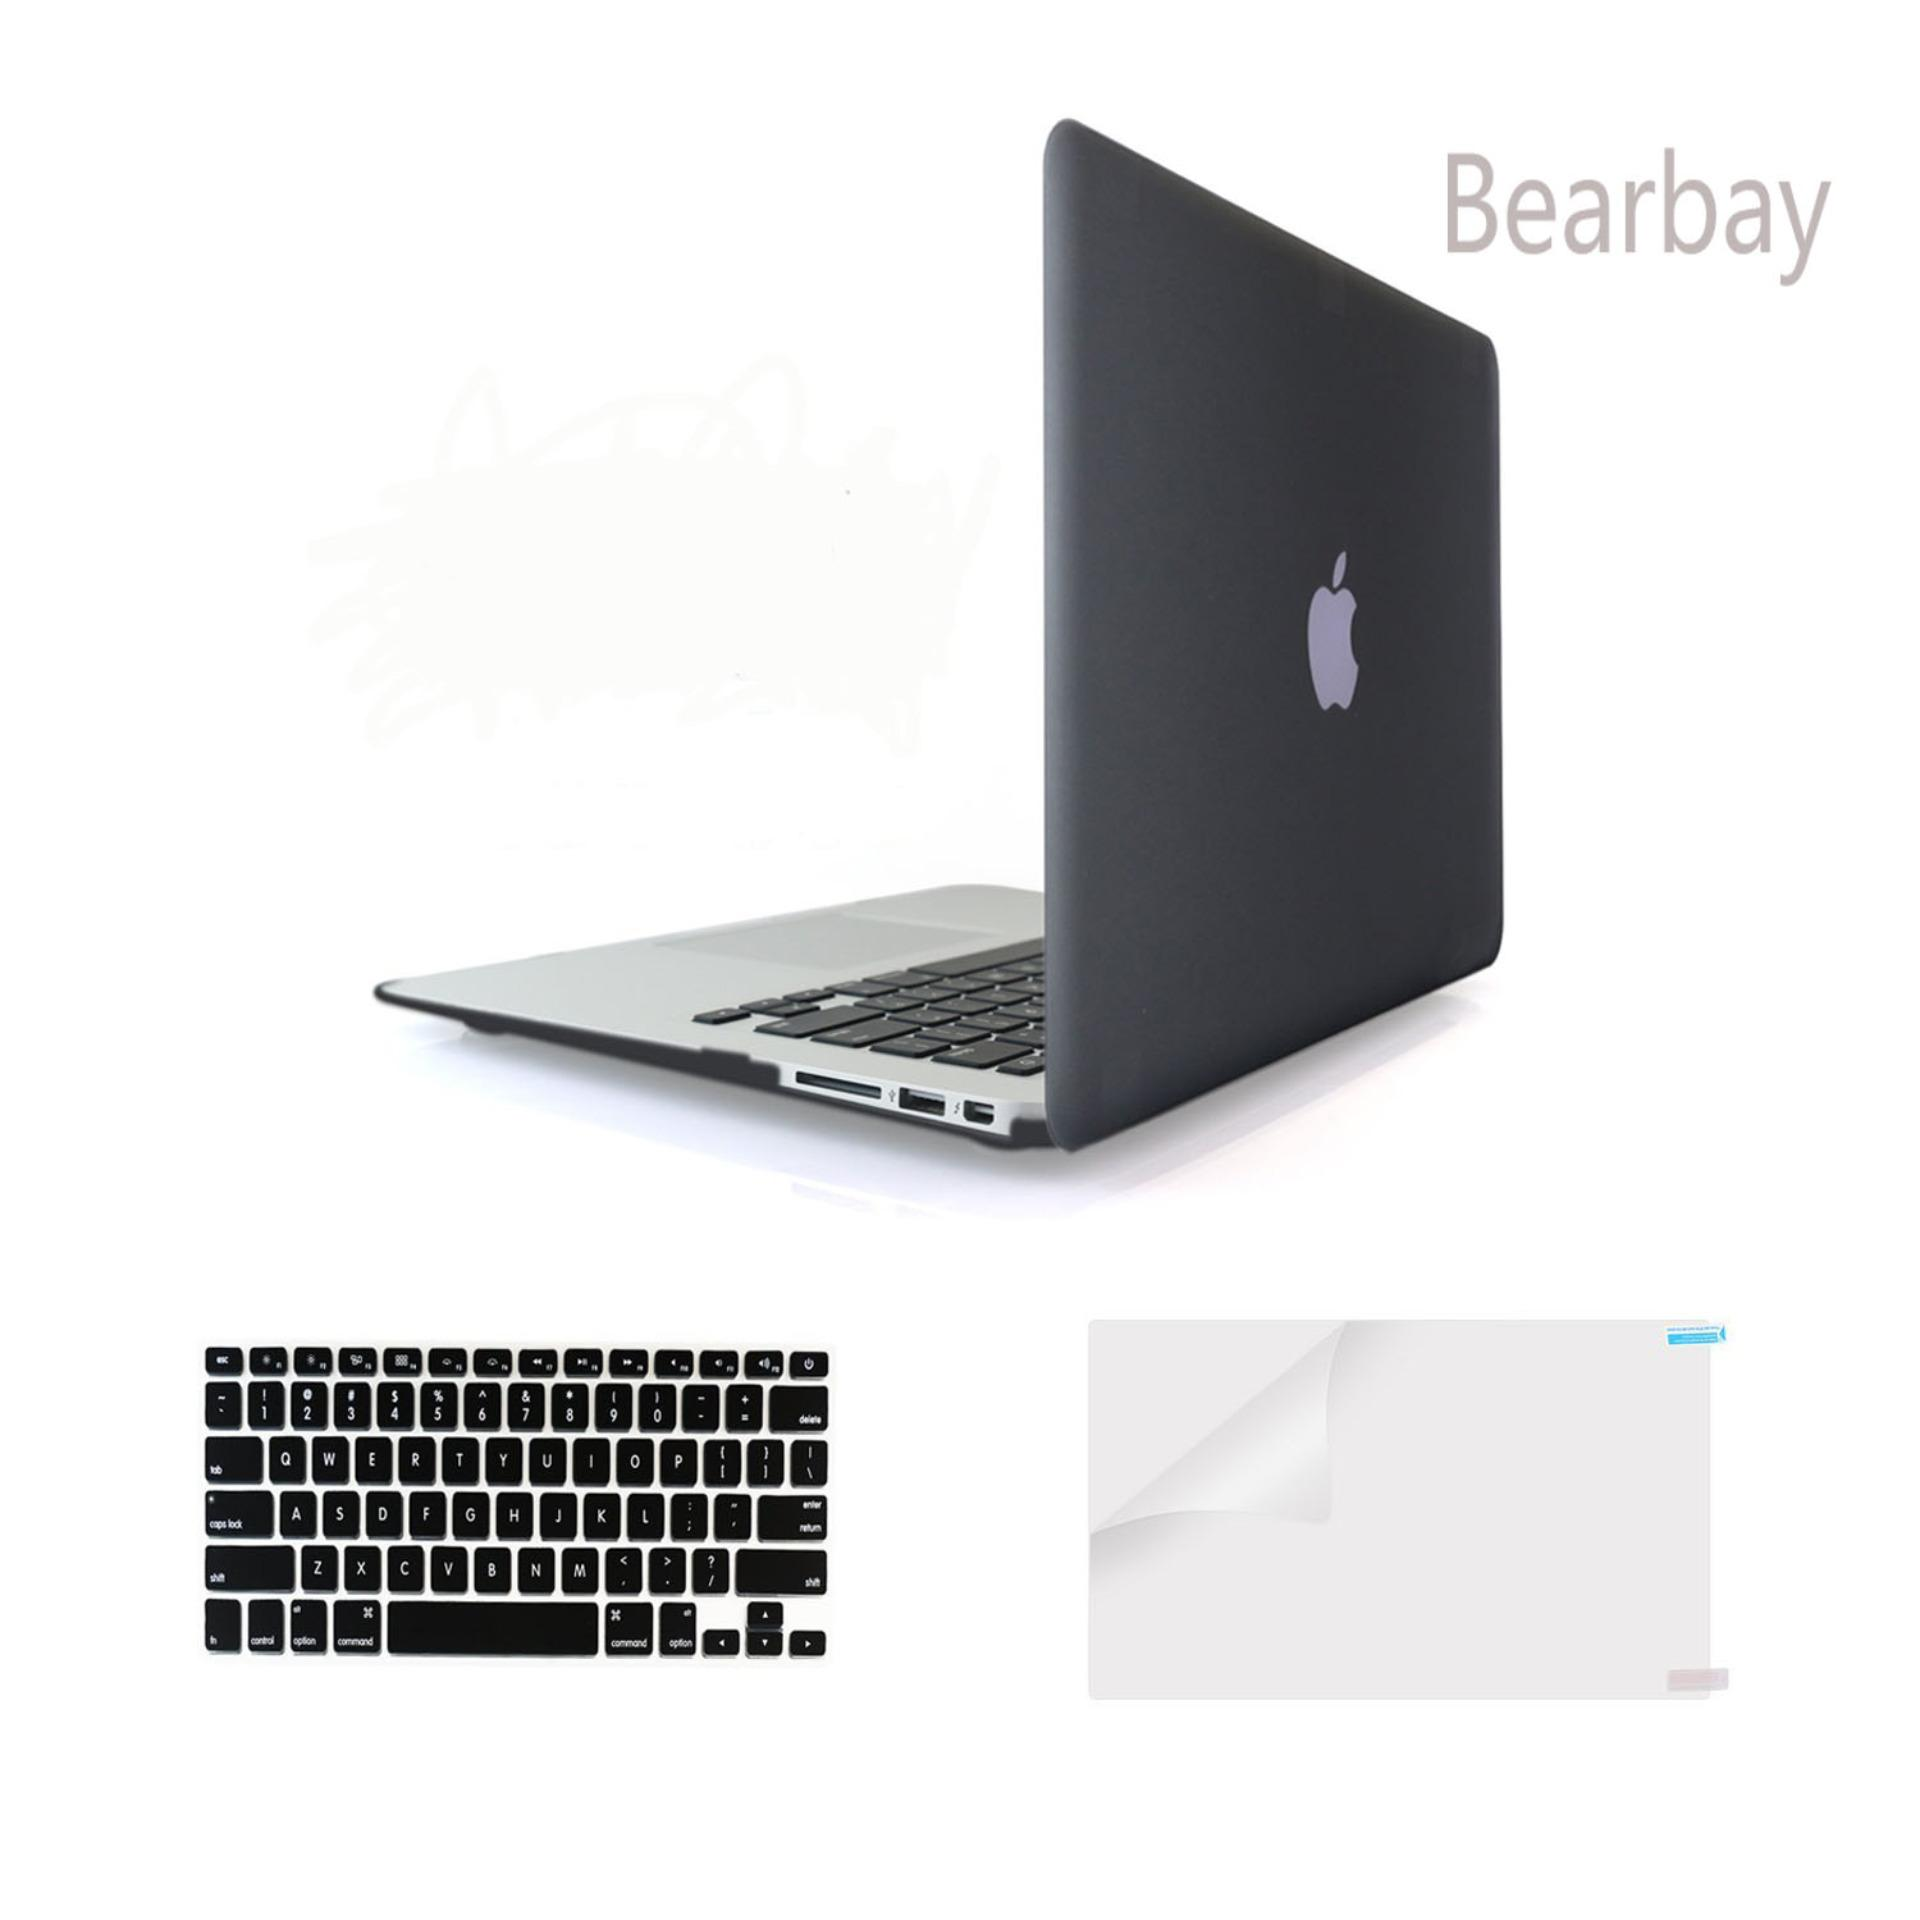 ... Bearbay 3 in 1 Apple Macbook Air 13 inch Soft Touch Plastic Hard Case